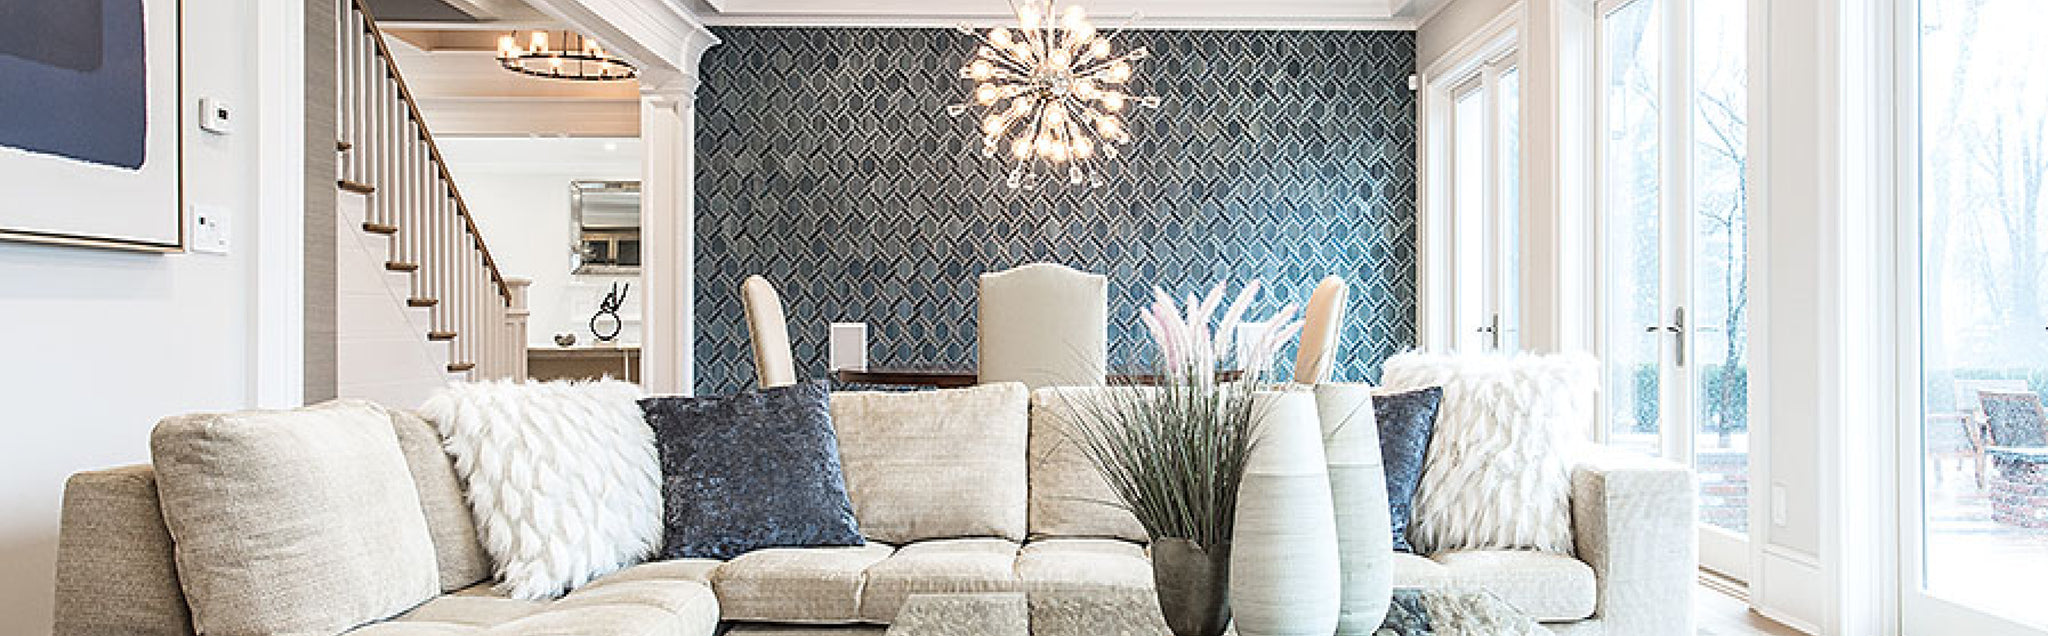 Ocean Blu Designs - Interior Designers serving the NY Metropolitan, Hamptons and Long Island area.